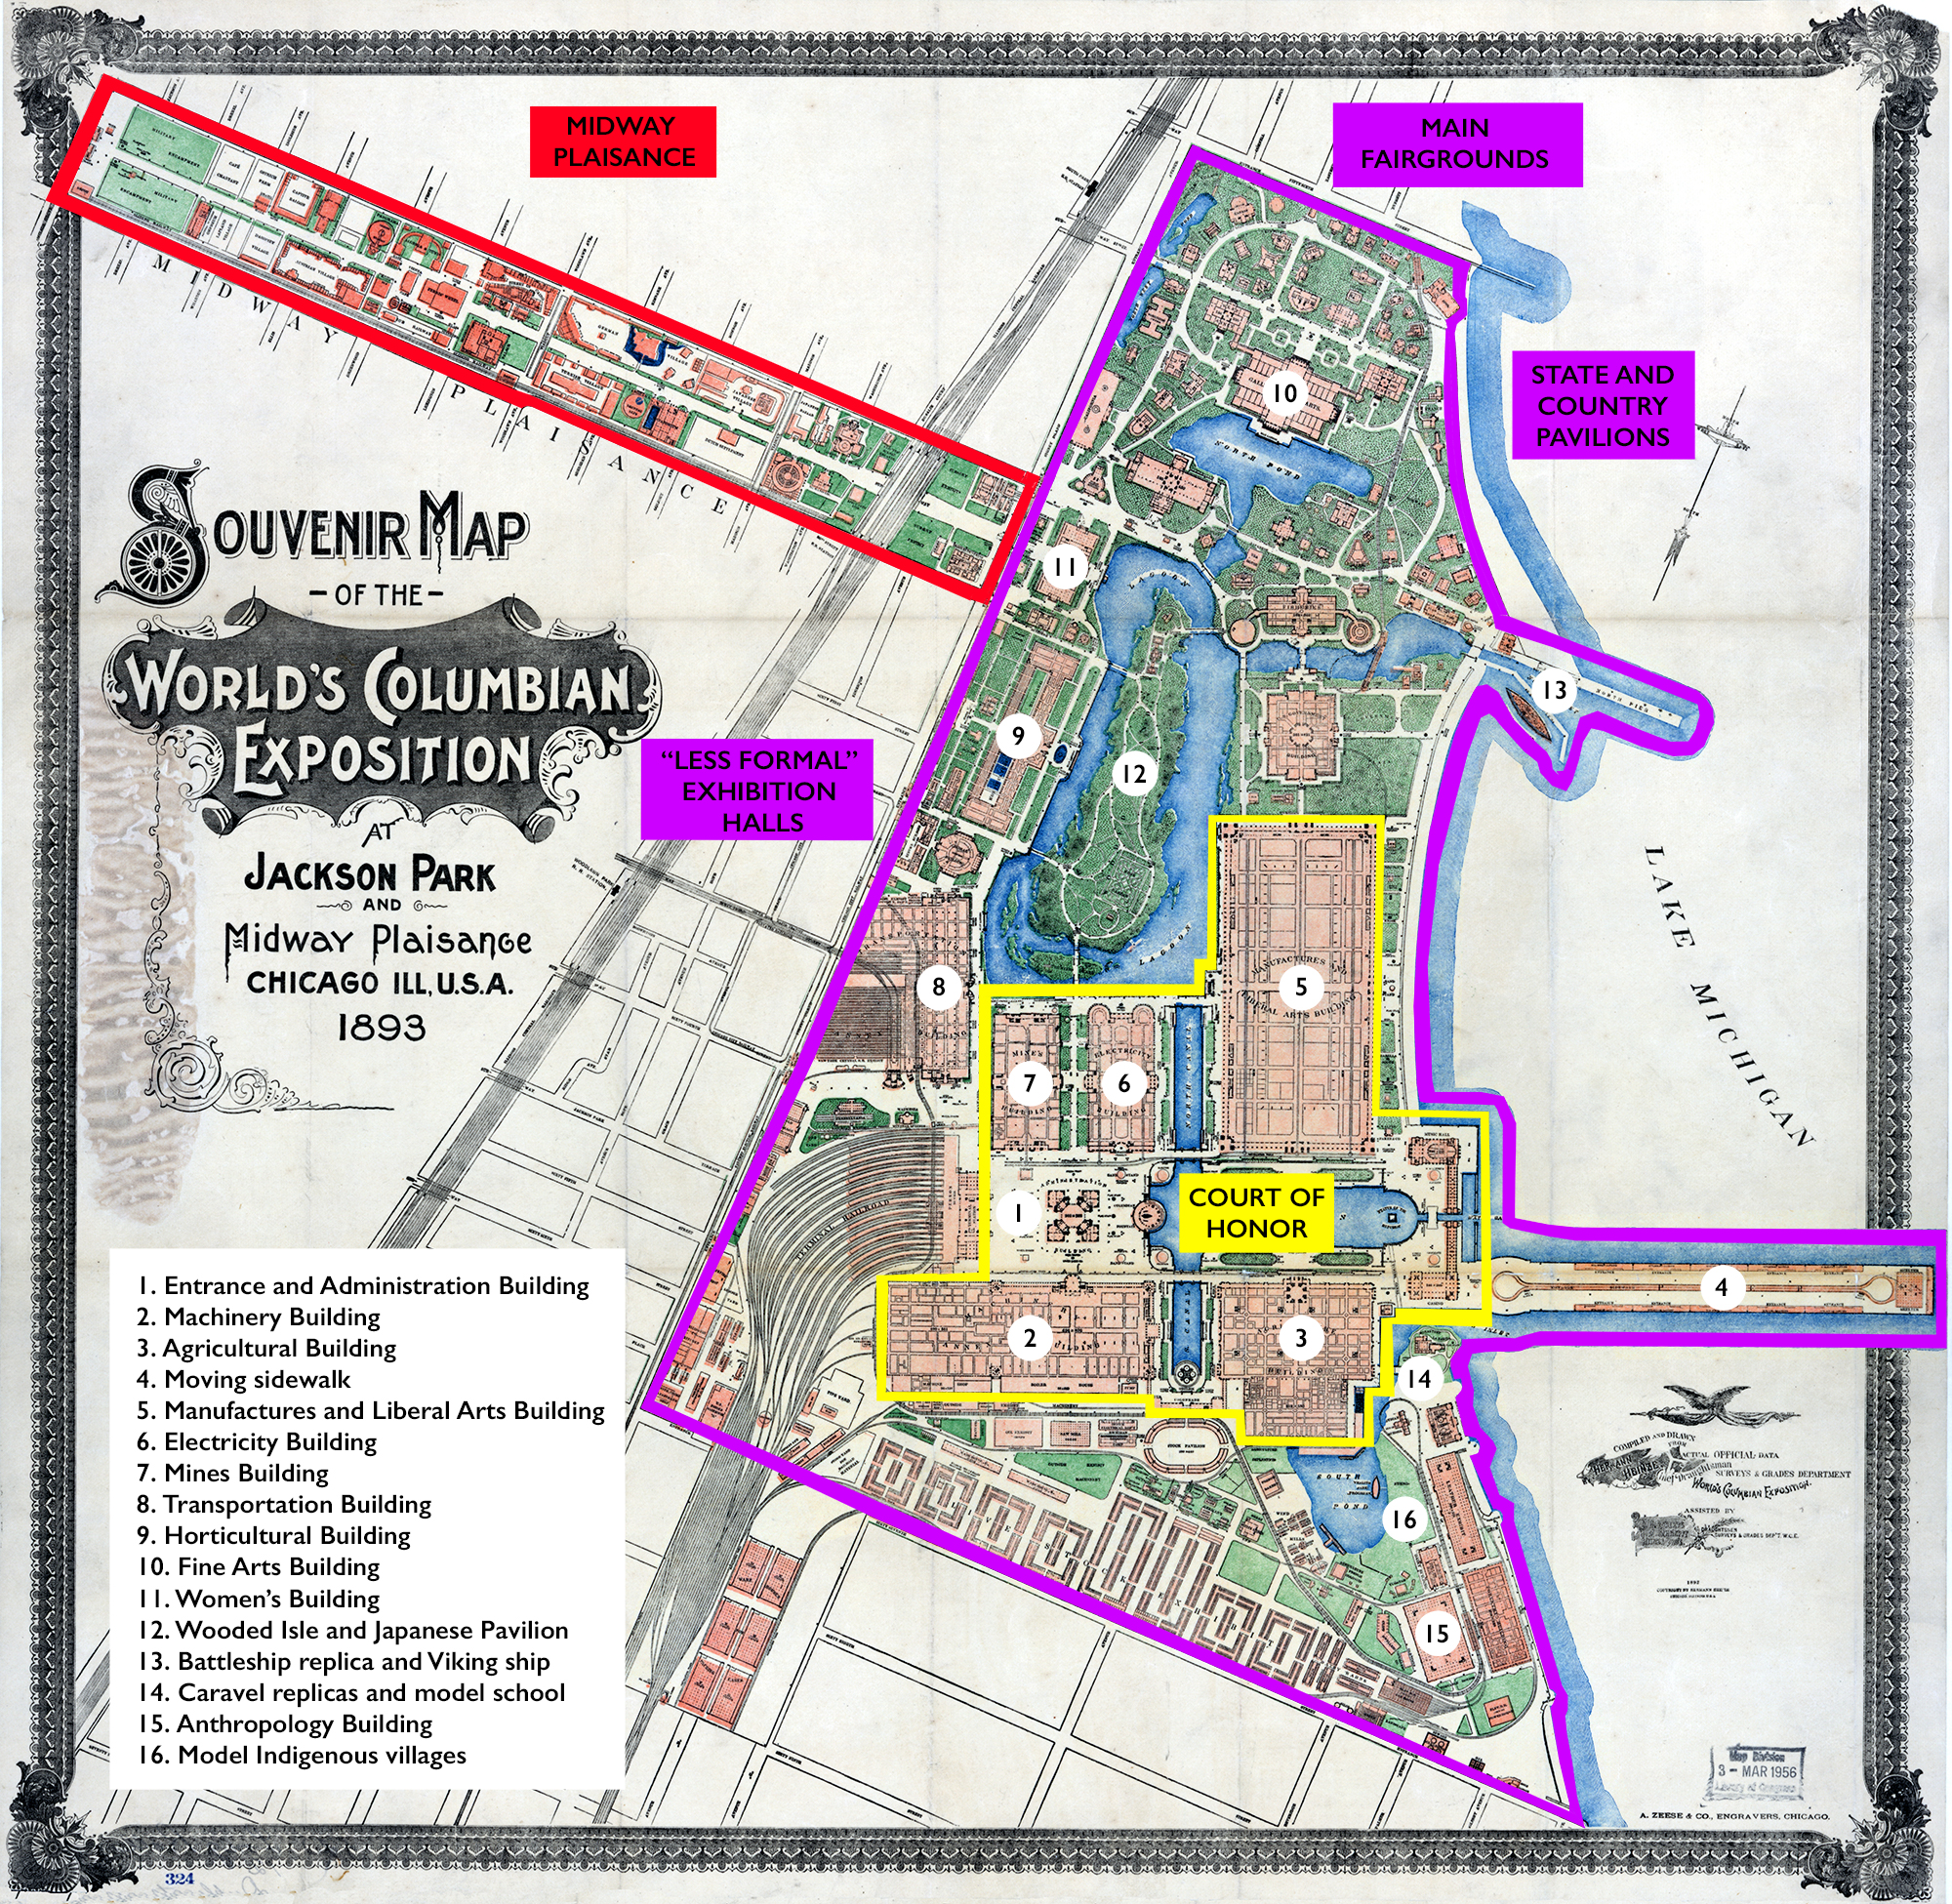 Numbered map of main fairgrounds